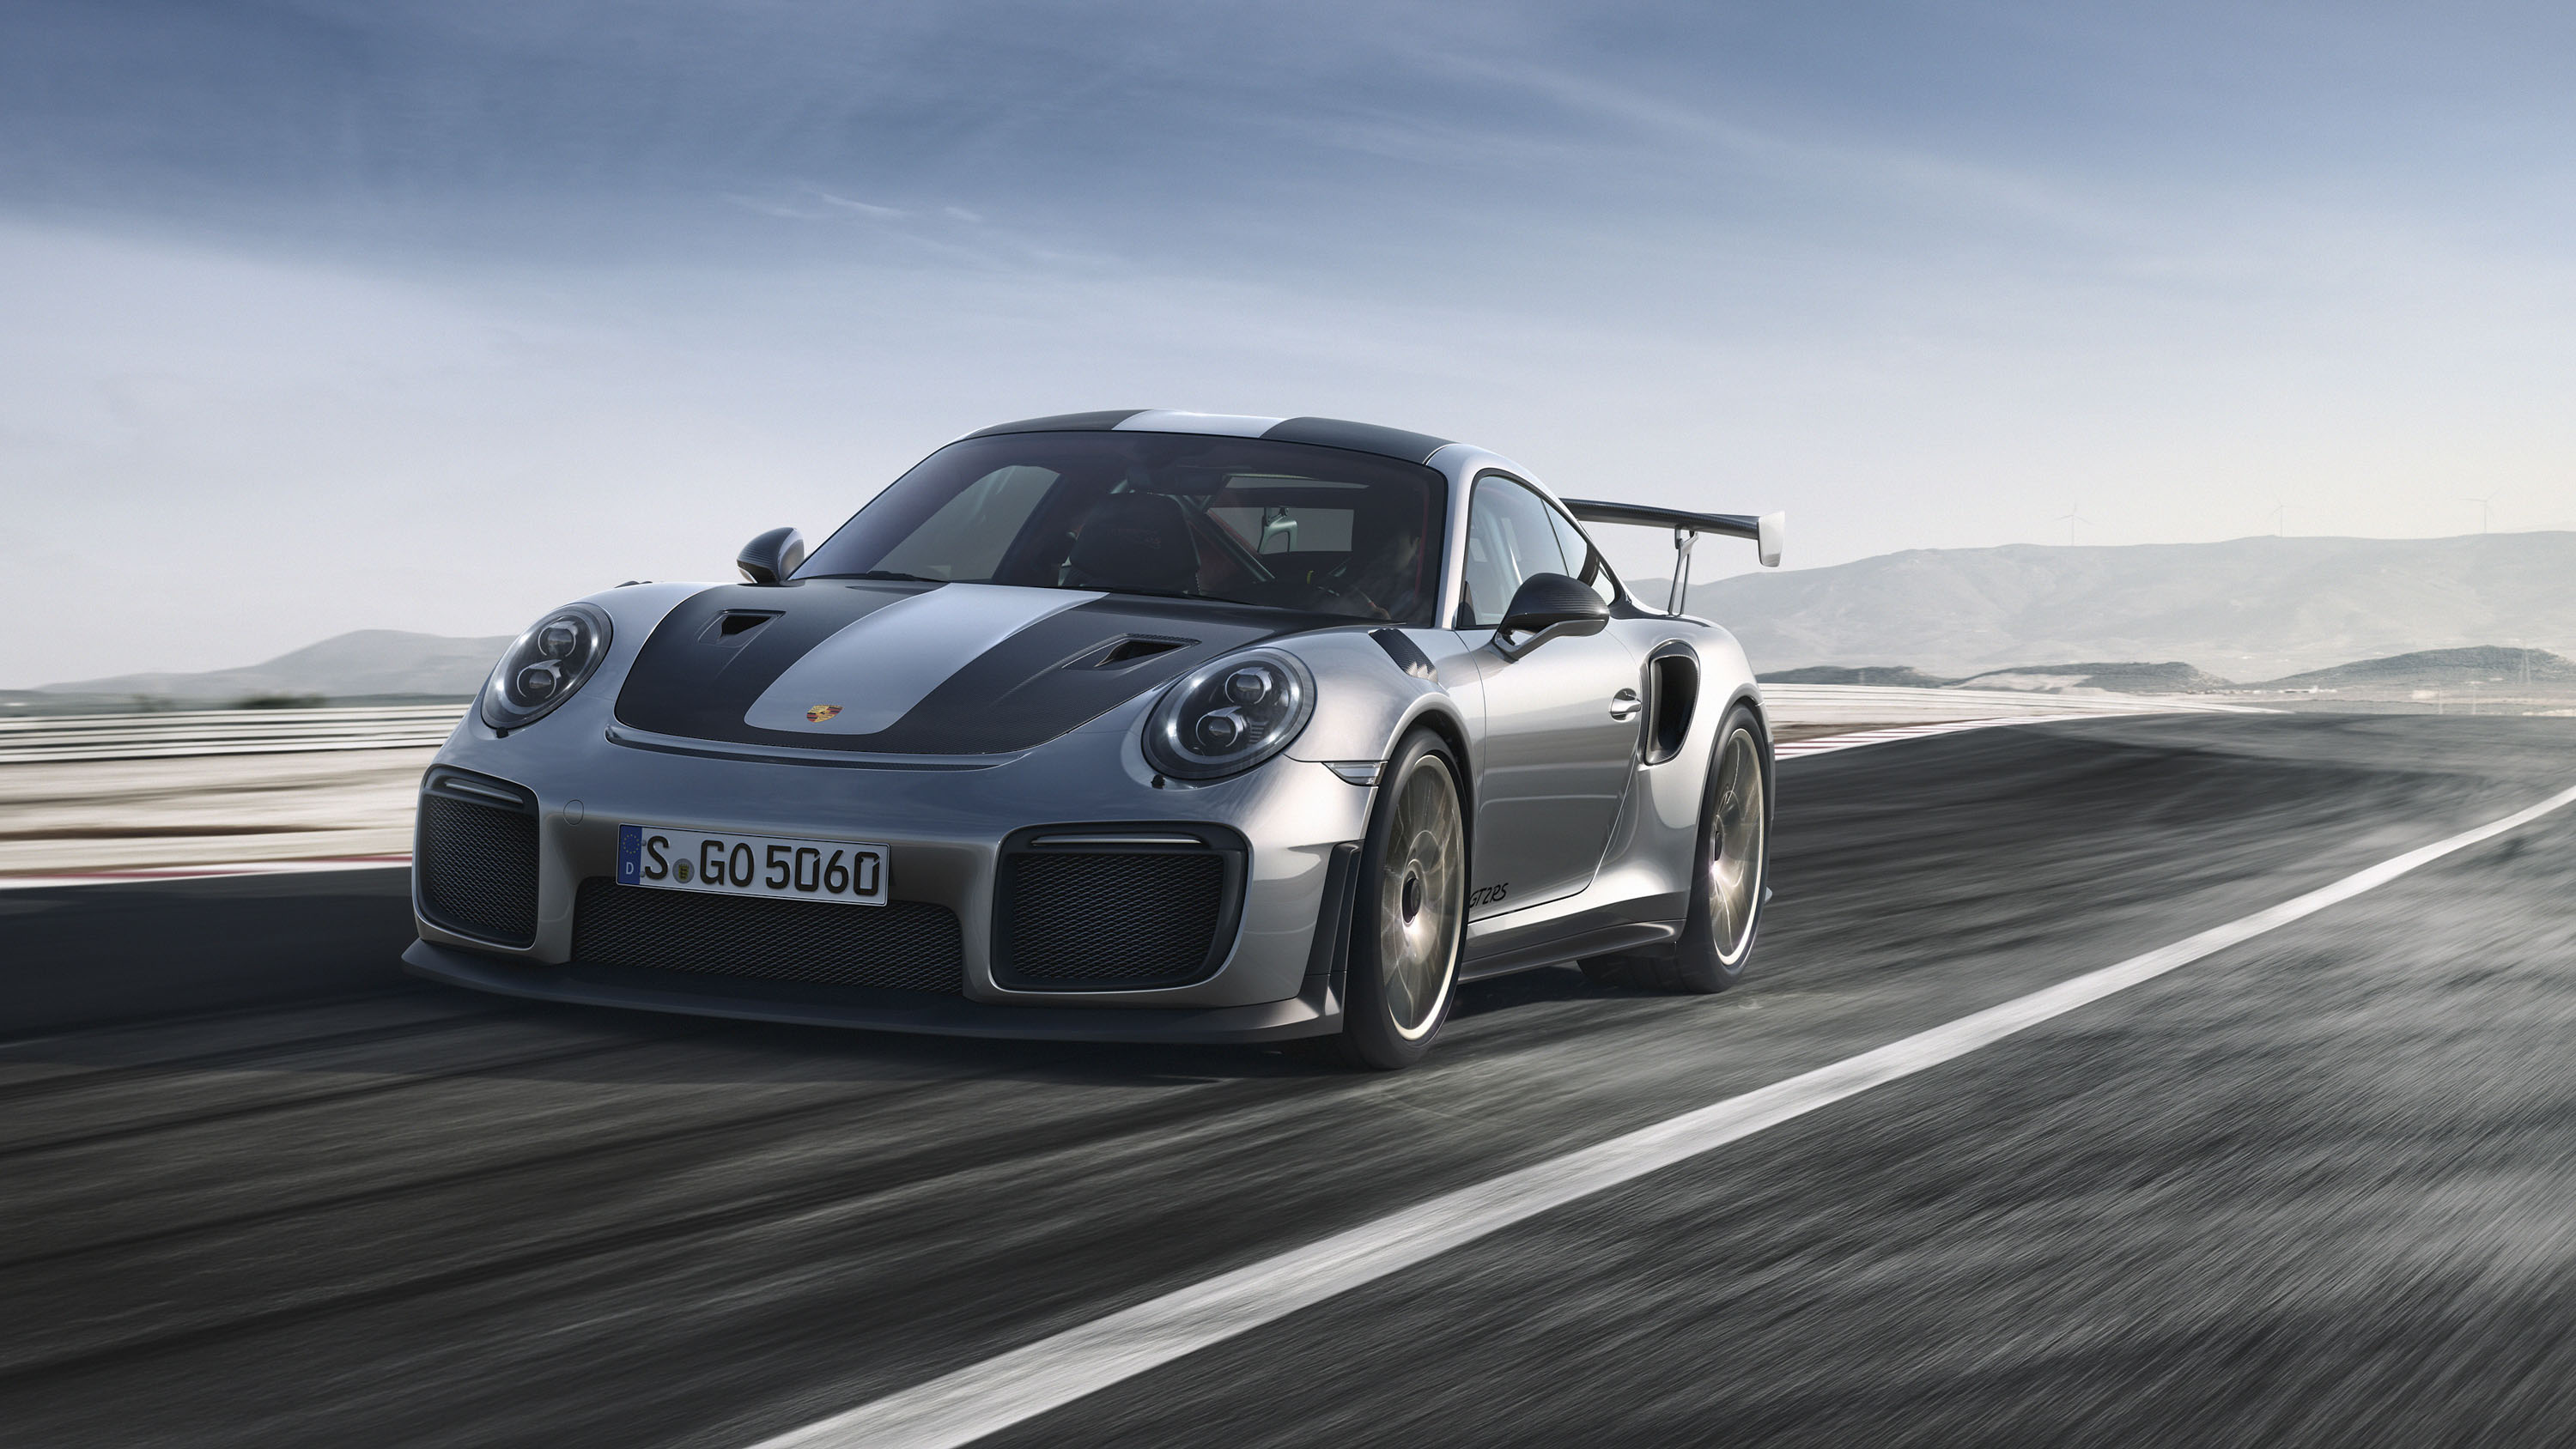 Watch The Porsche 911 Gt2 Rs Mr Become The Fastest Road Legal Car To Tackle The Nurburgring Top Speed